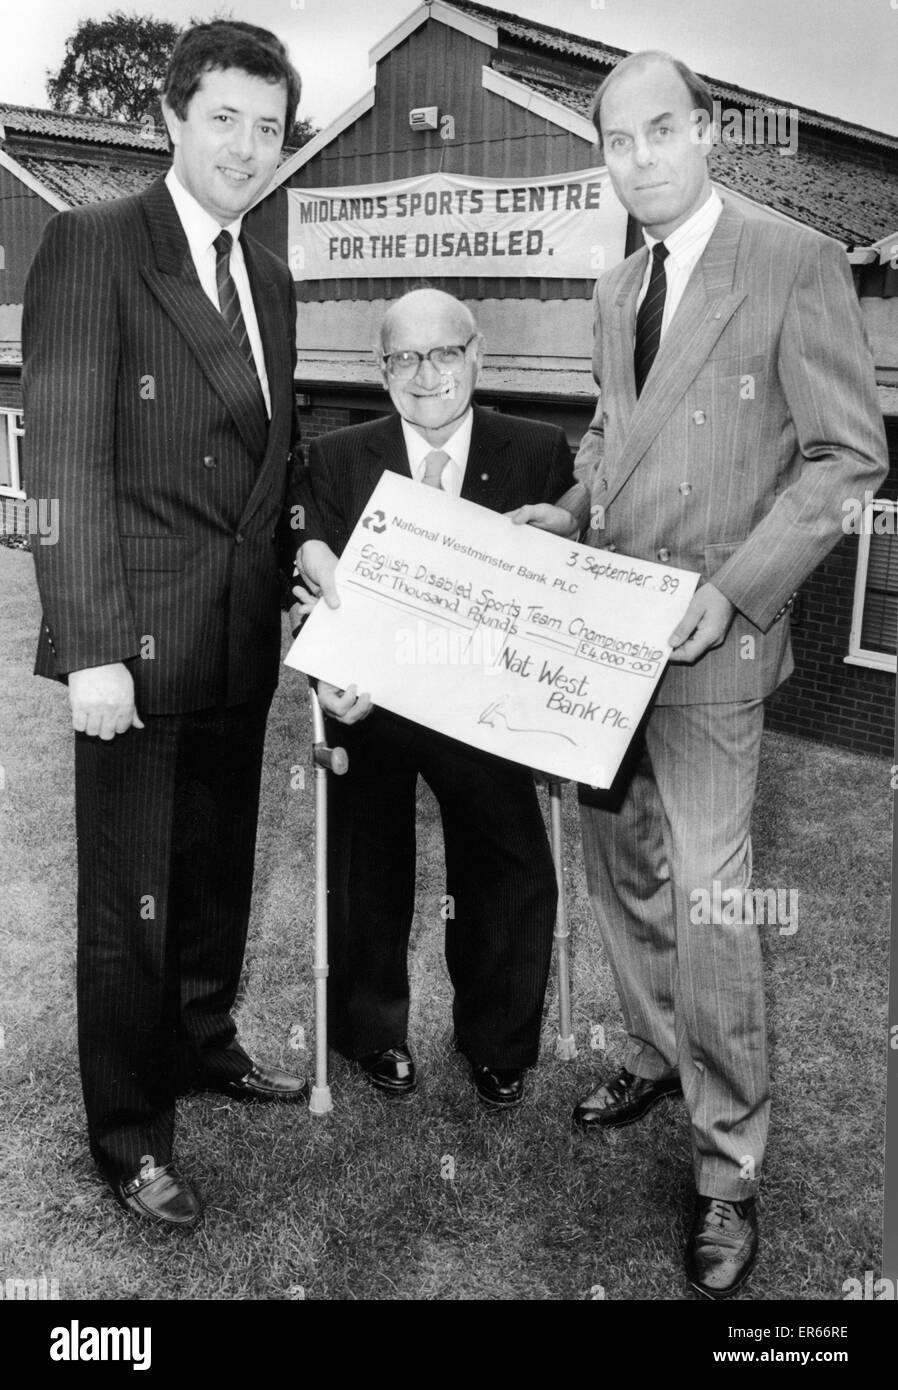 Len Tasker Coventry Disabilites campaigner and sportsman (centre) seen here with Peter Nelson (left) and Ron Gibbs - Stock Image